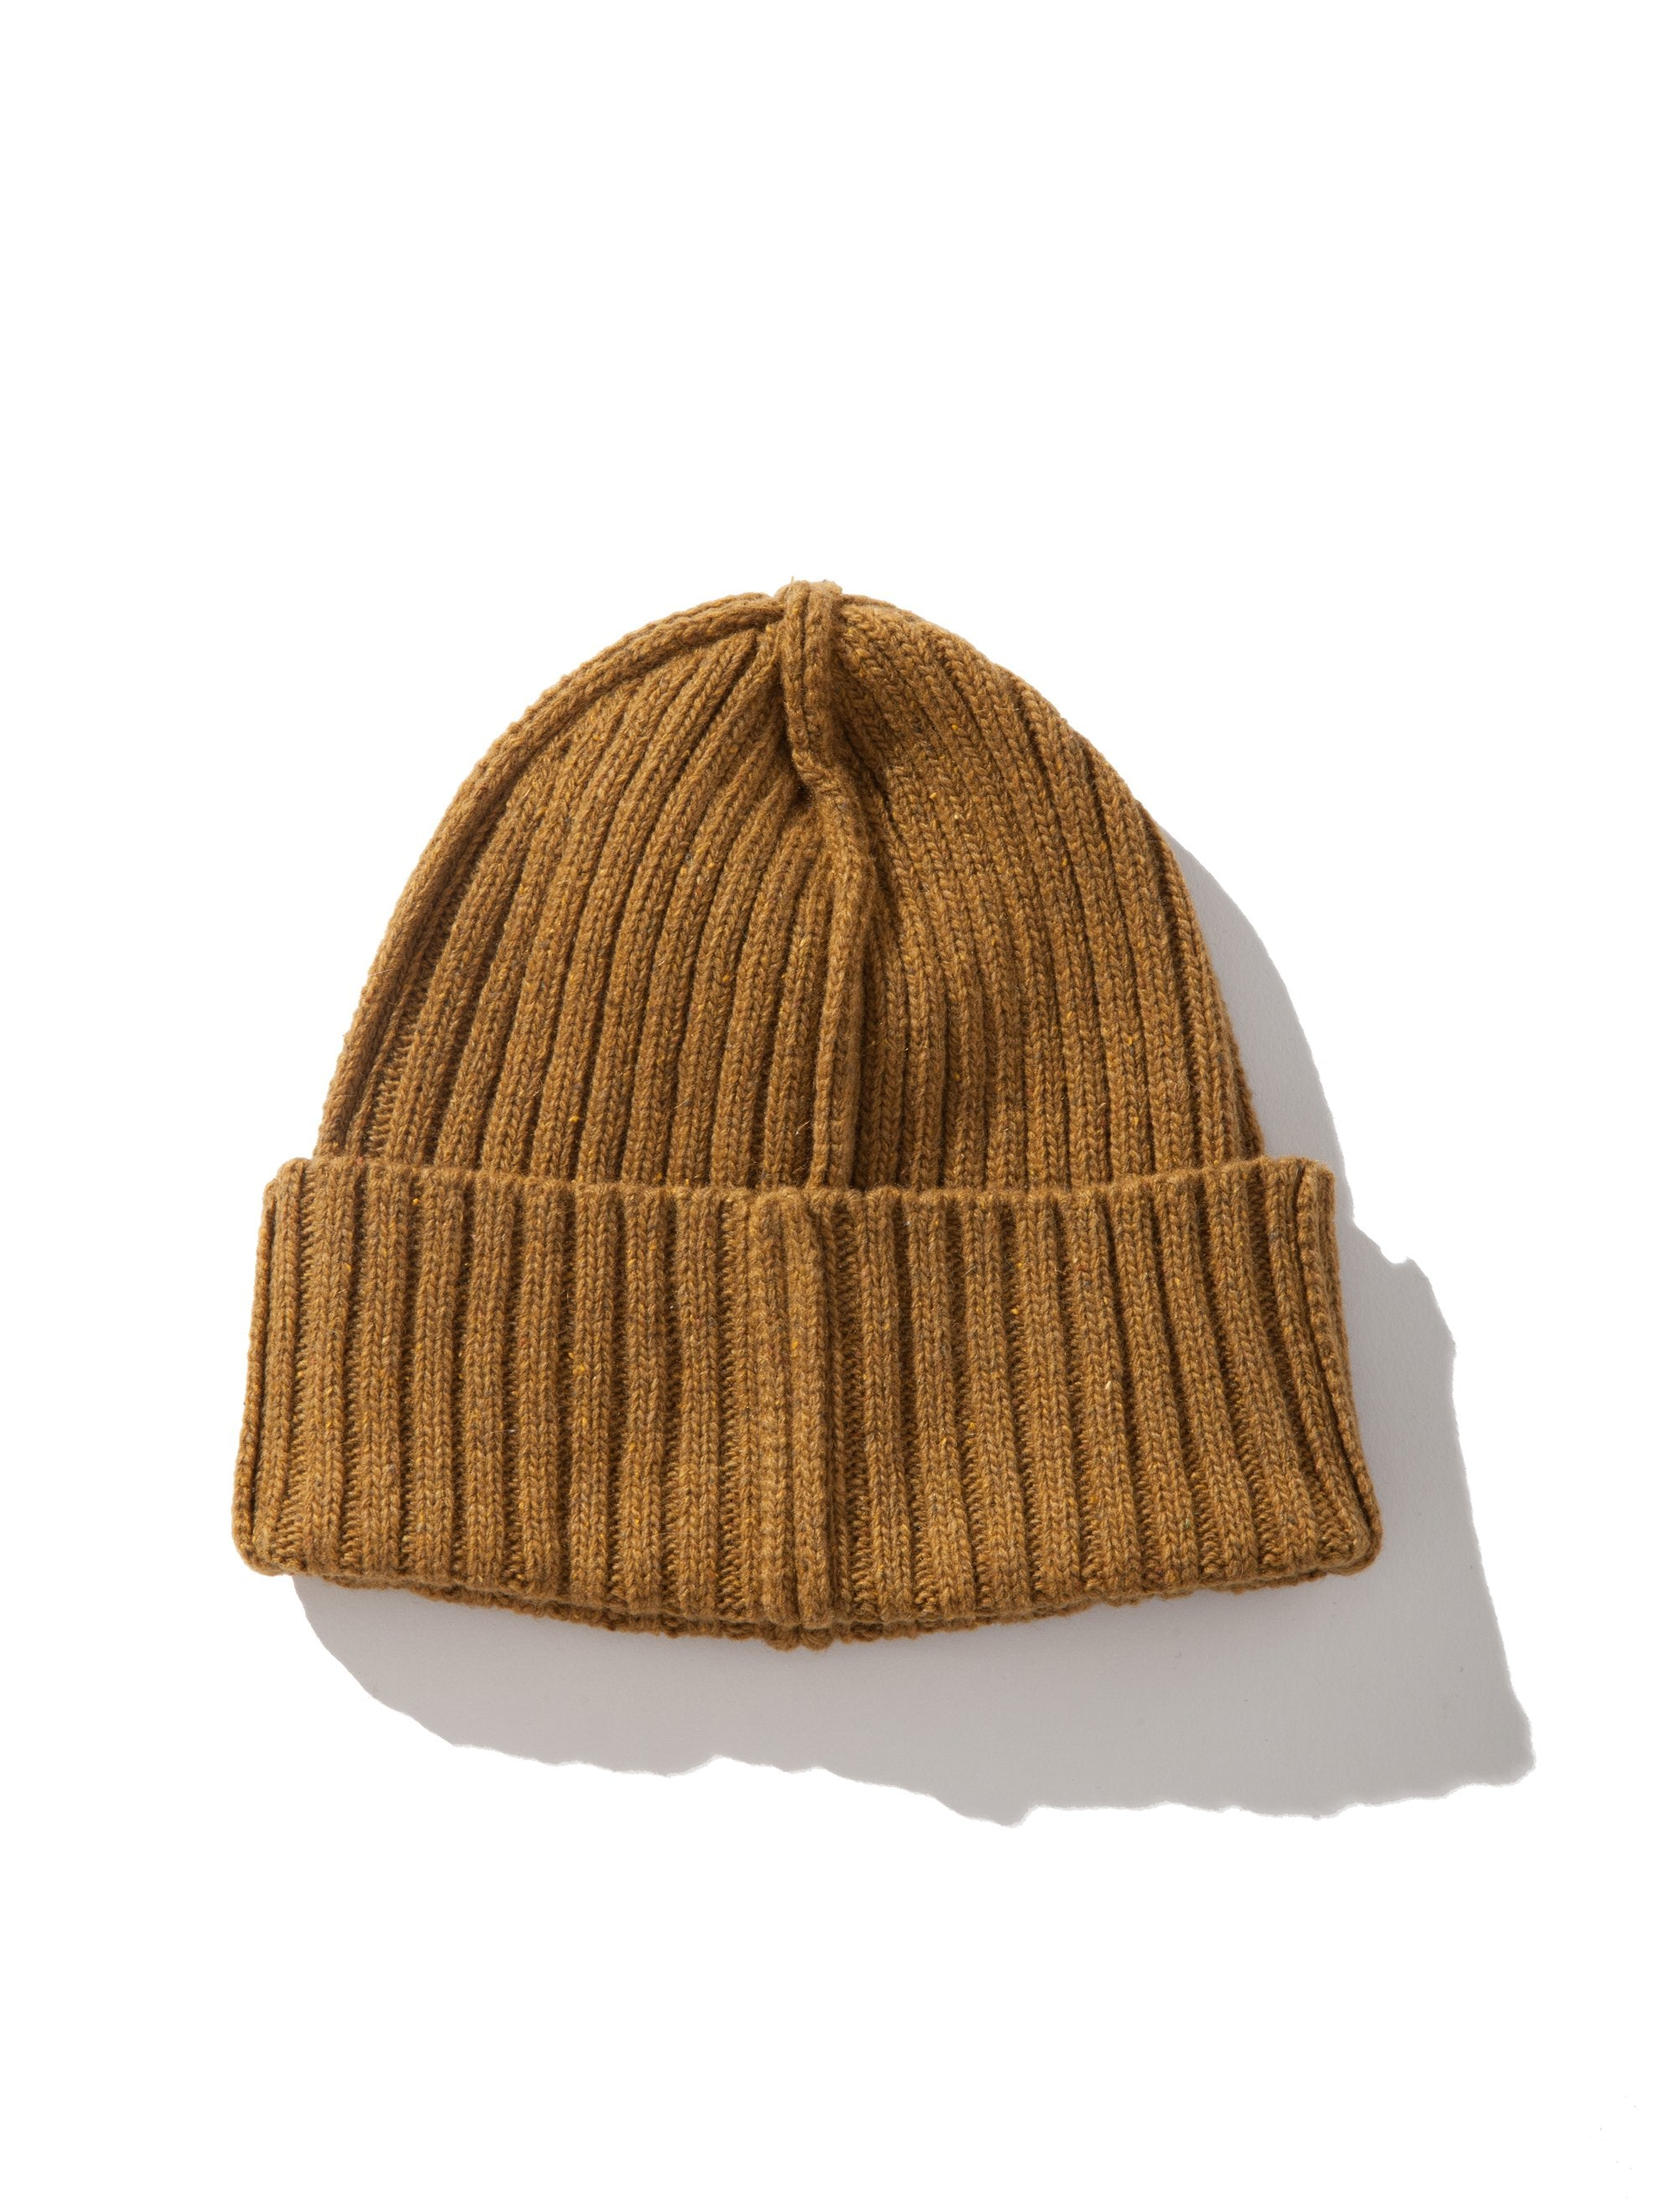 Mustard ABOVE THE TOWER Wool Beanie 5